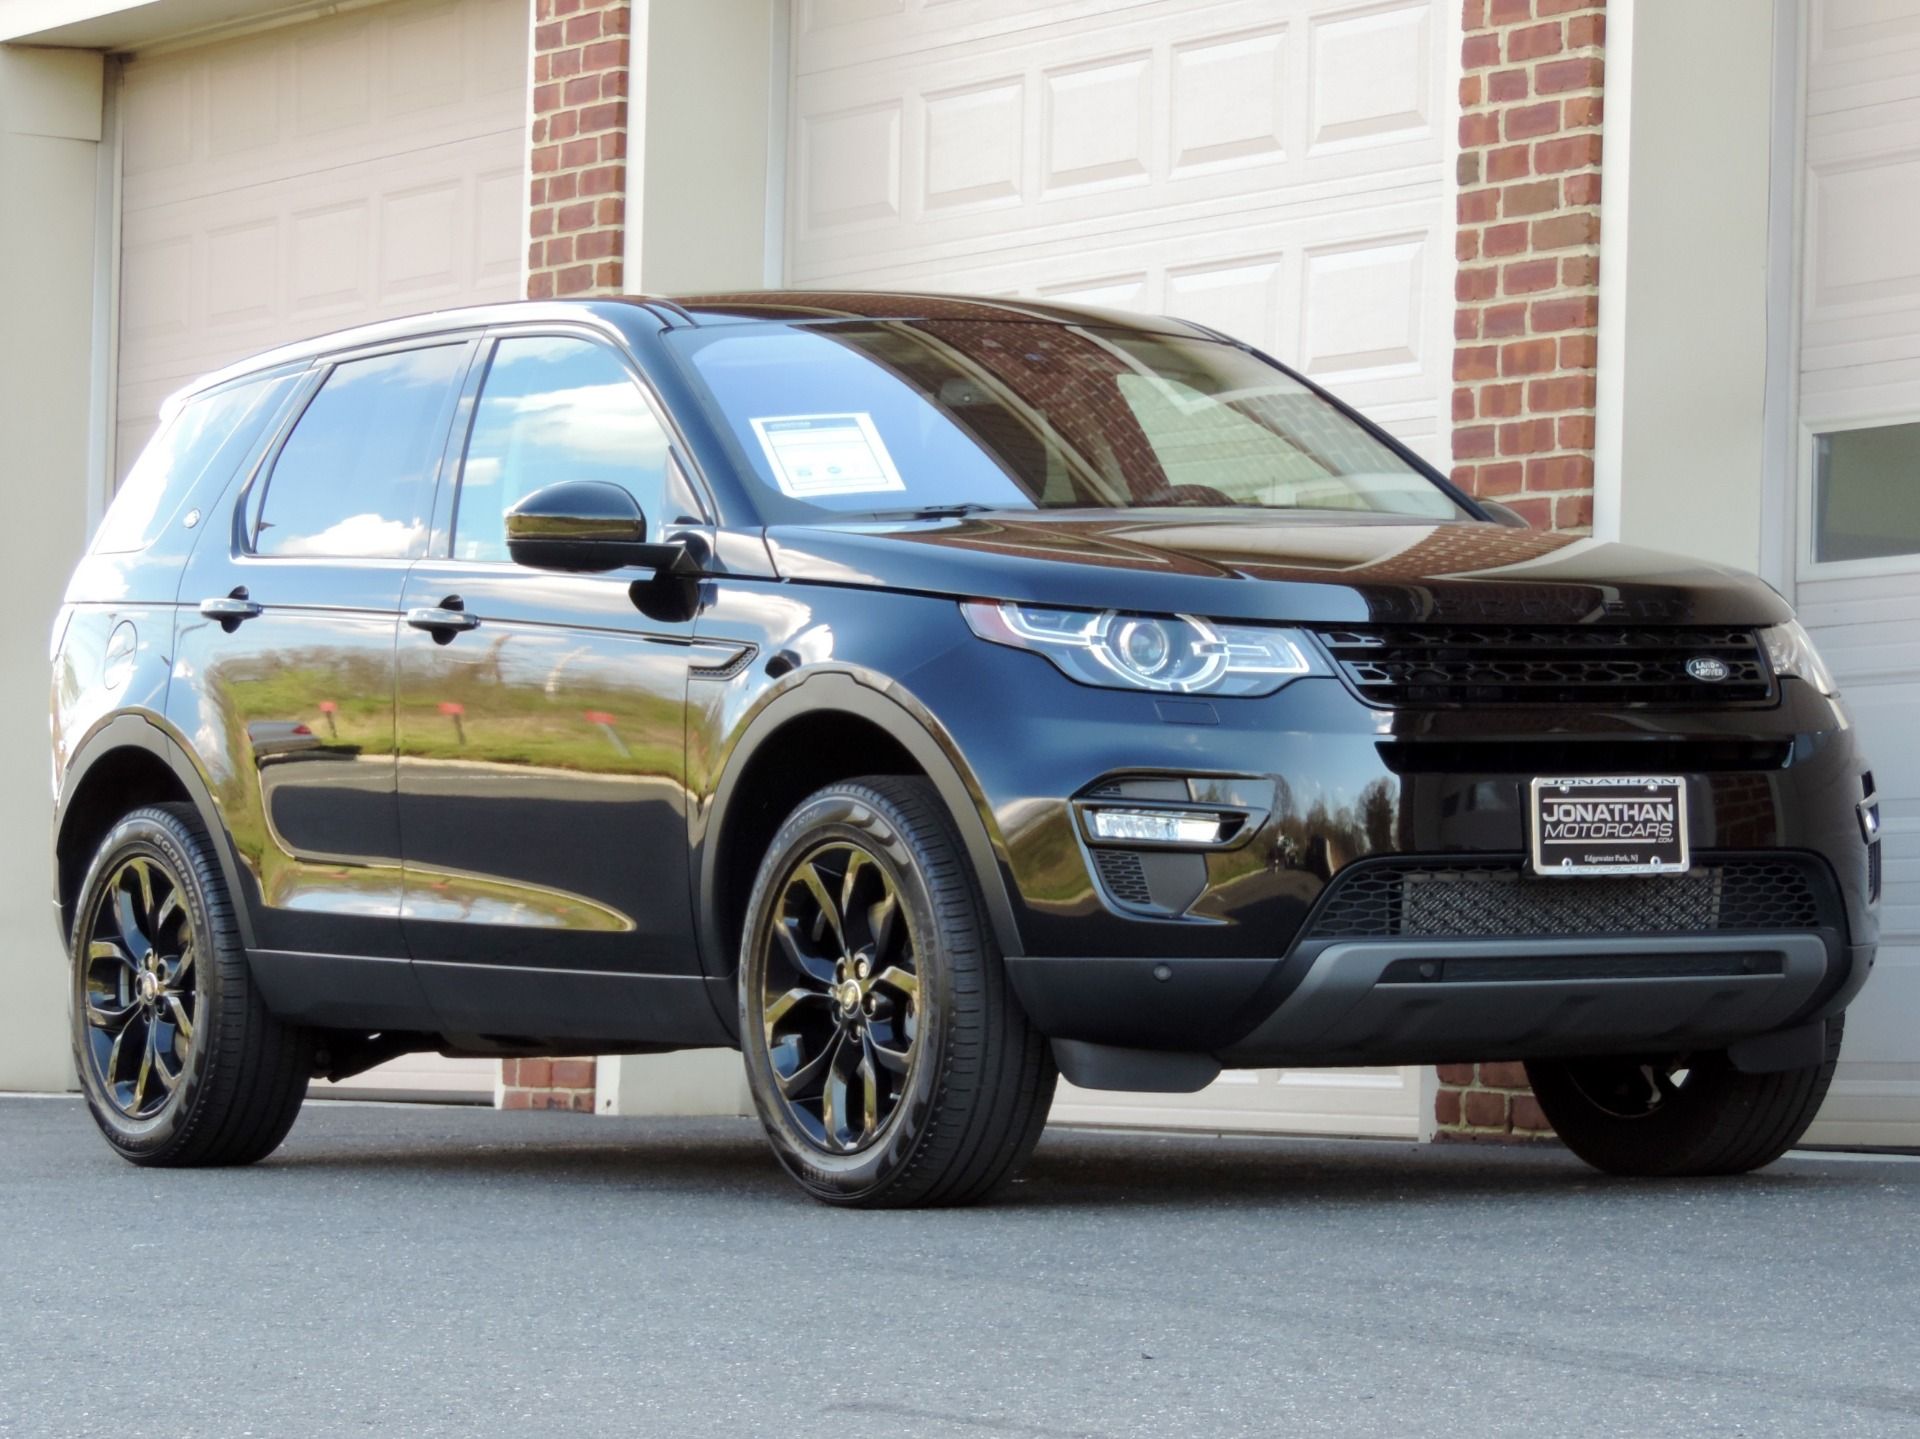 2017 land rover discovery sport hse black design edition stock 641405 for sale near edgewater. Black Bedroom Furniture Sets. Home Design Ideas